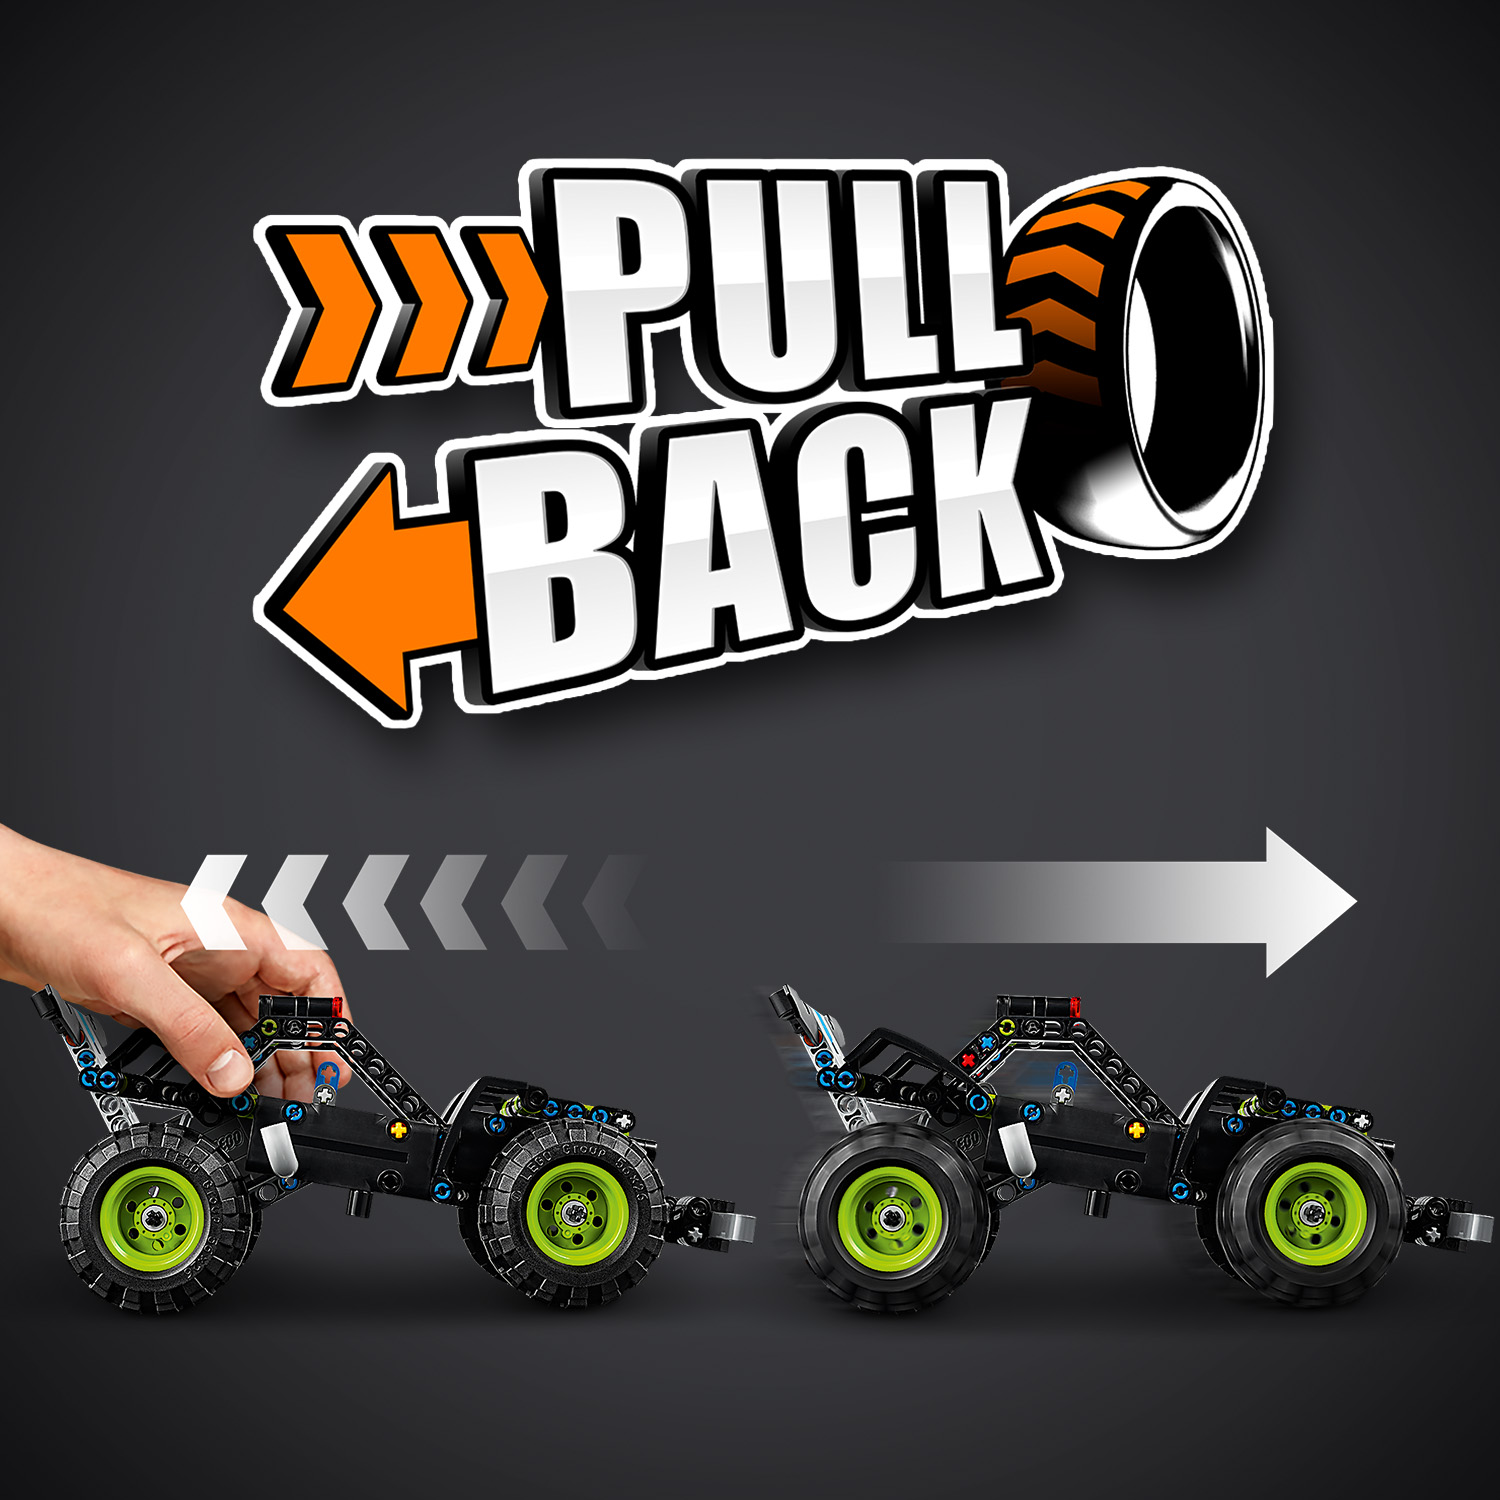 Pull-back action